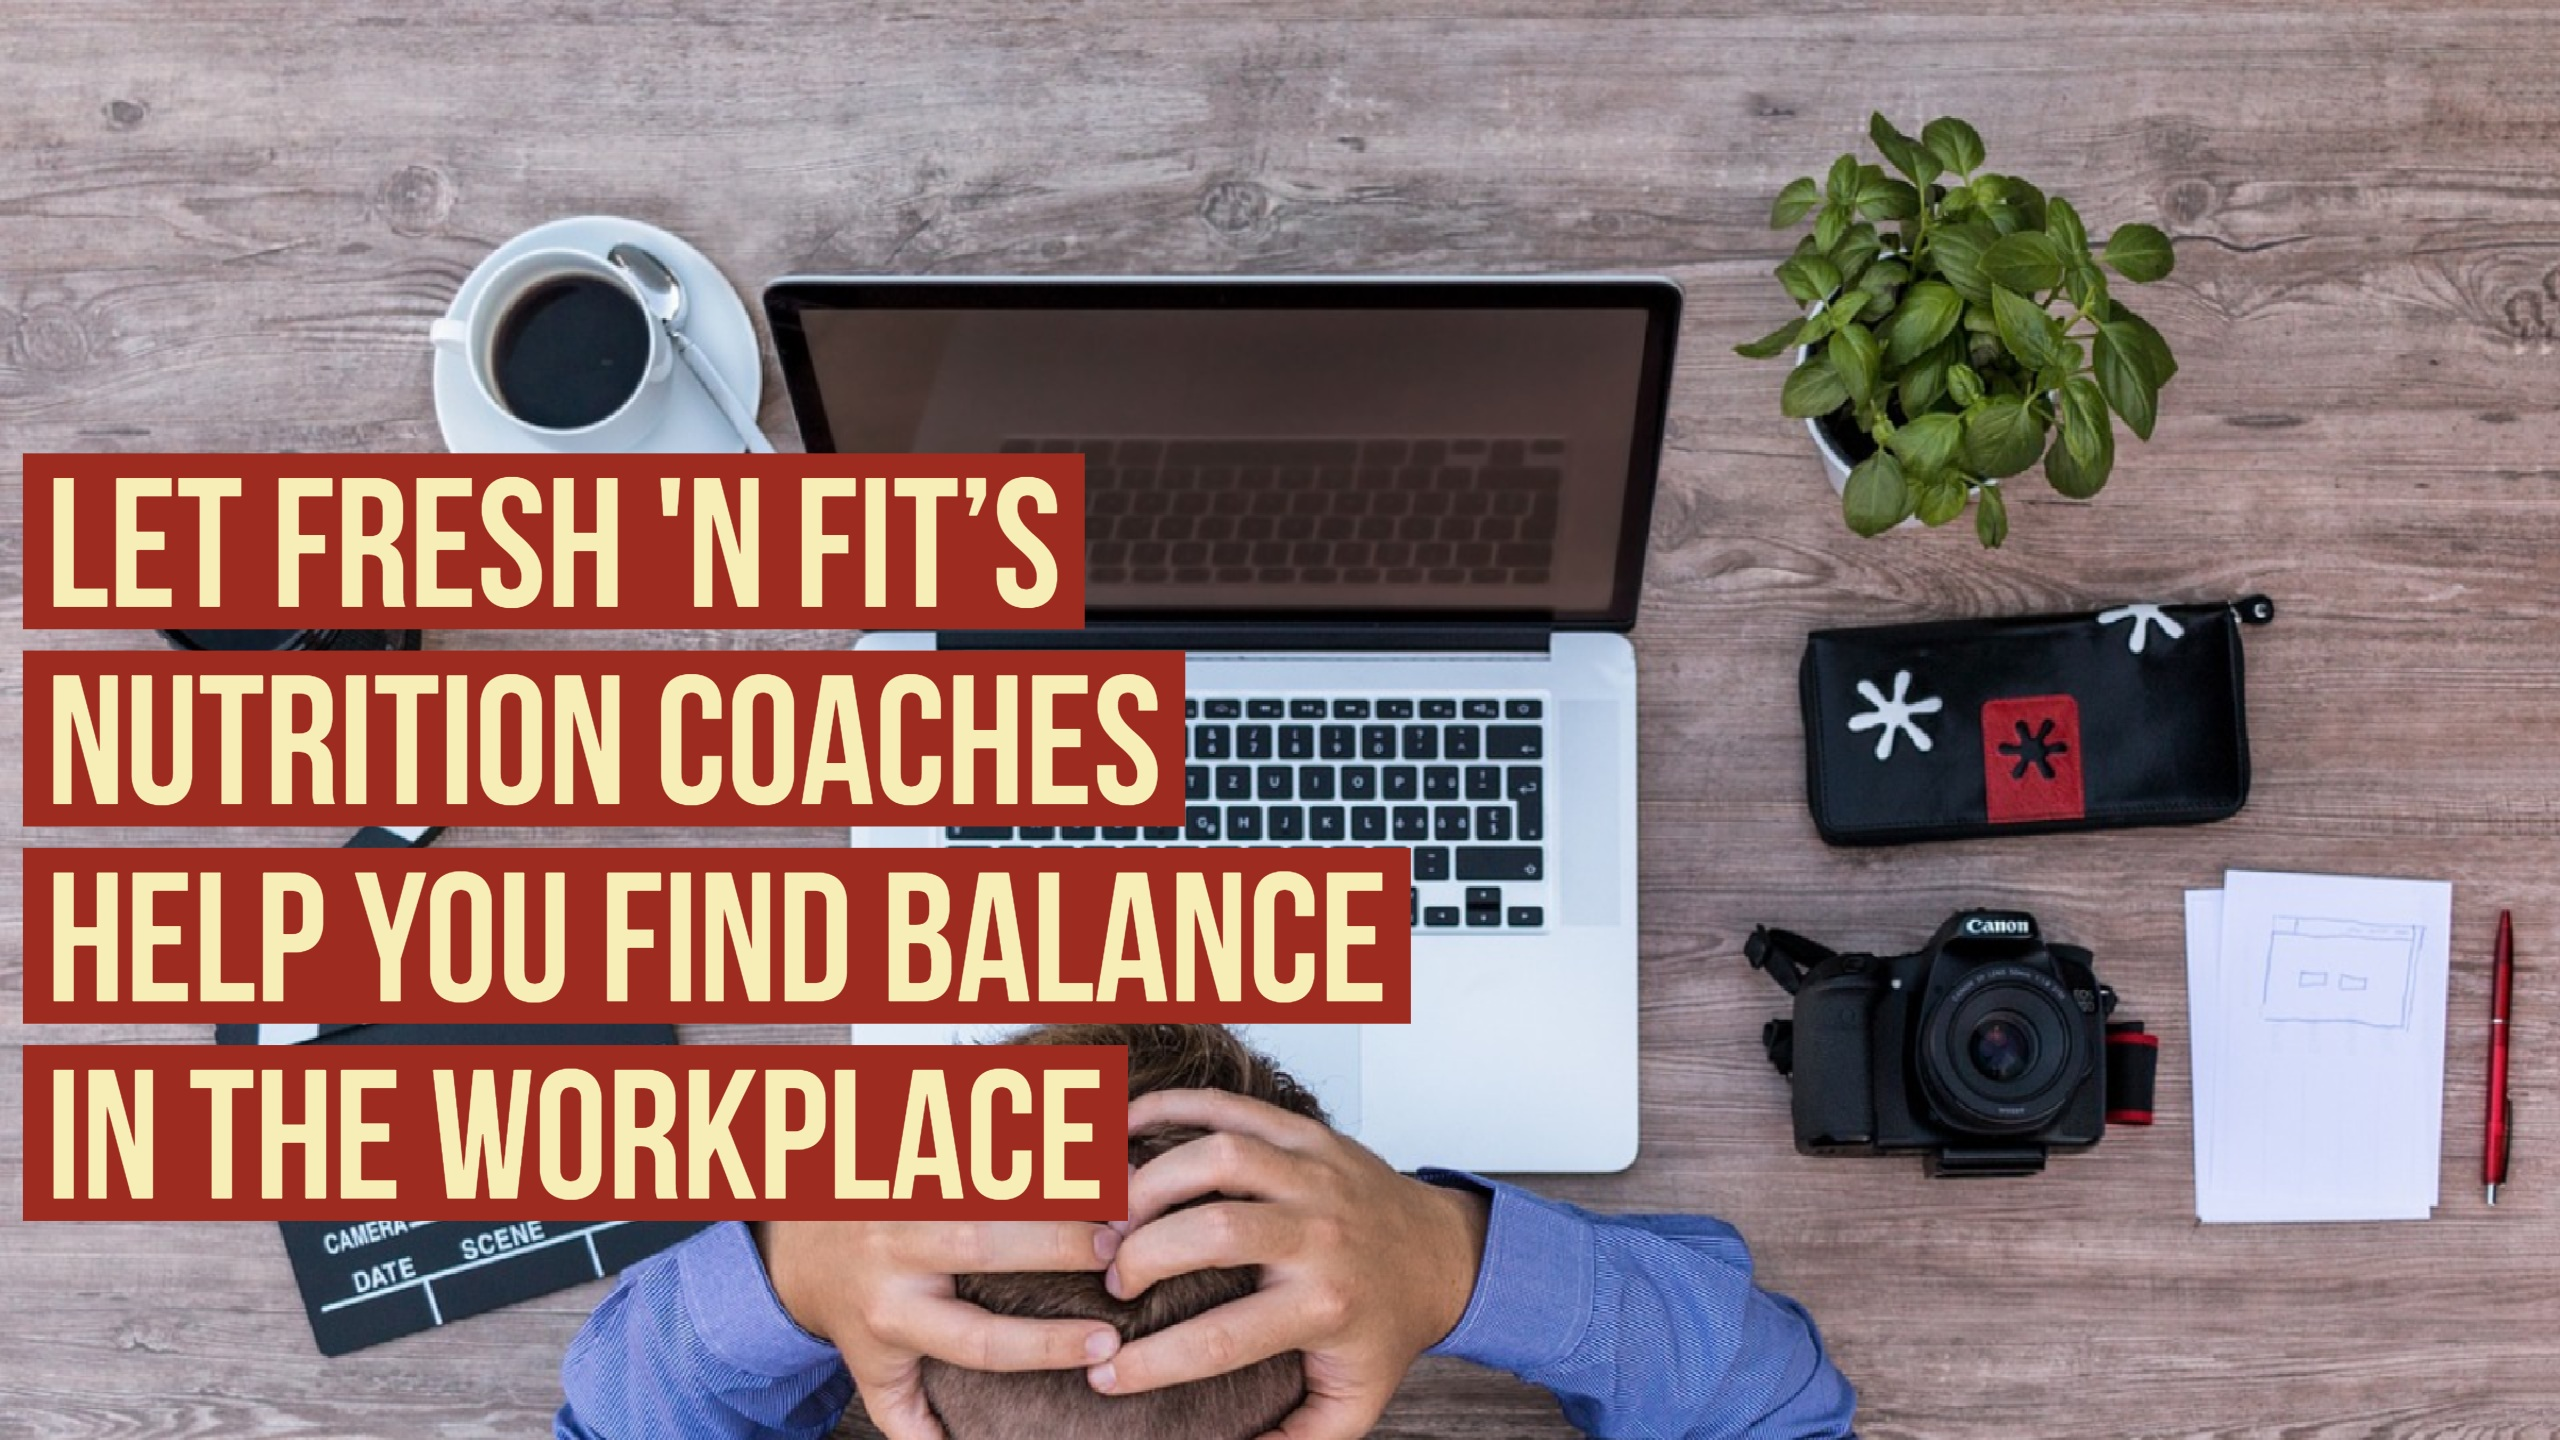 Let Fresh 'N Fit's Nutrition Coaches Help You Find Balance In The Workplace